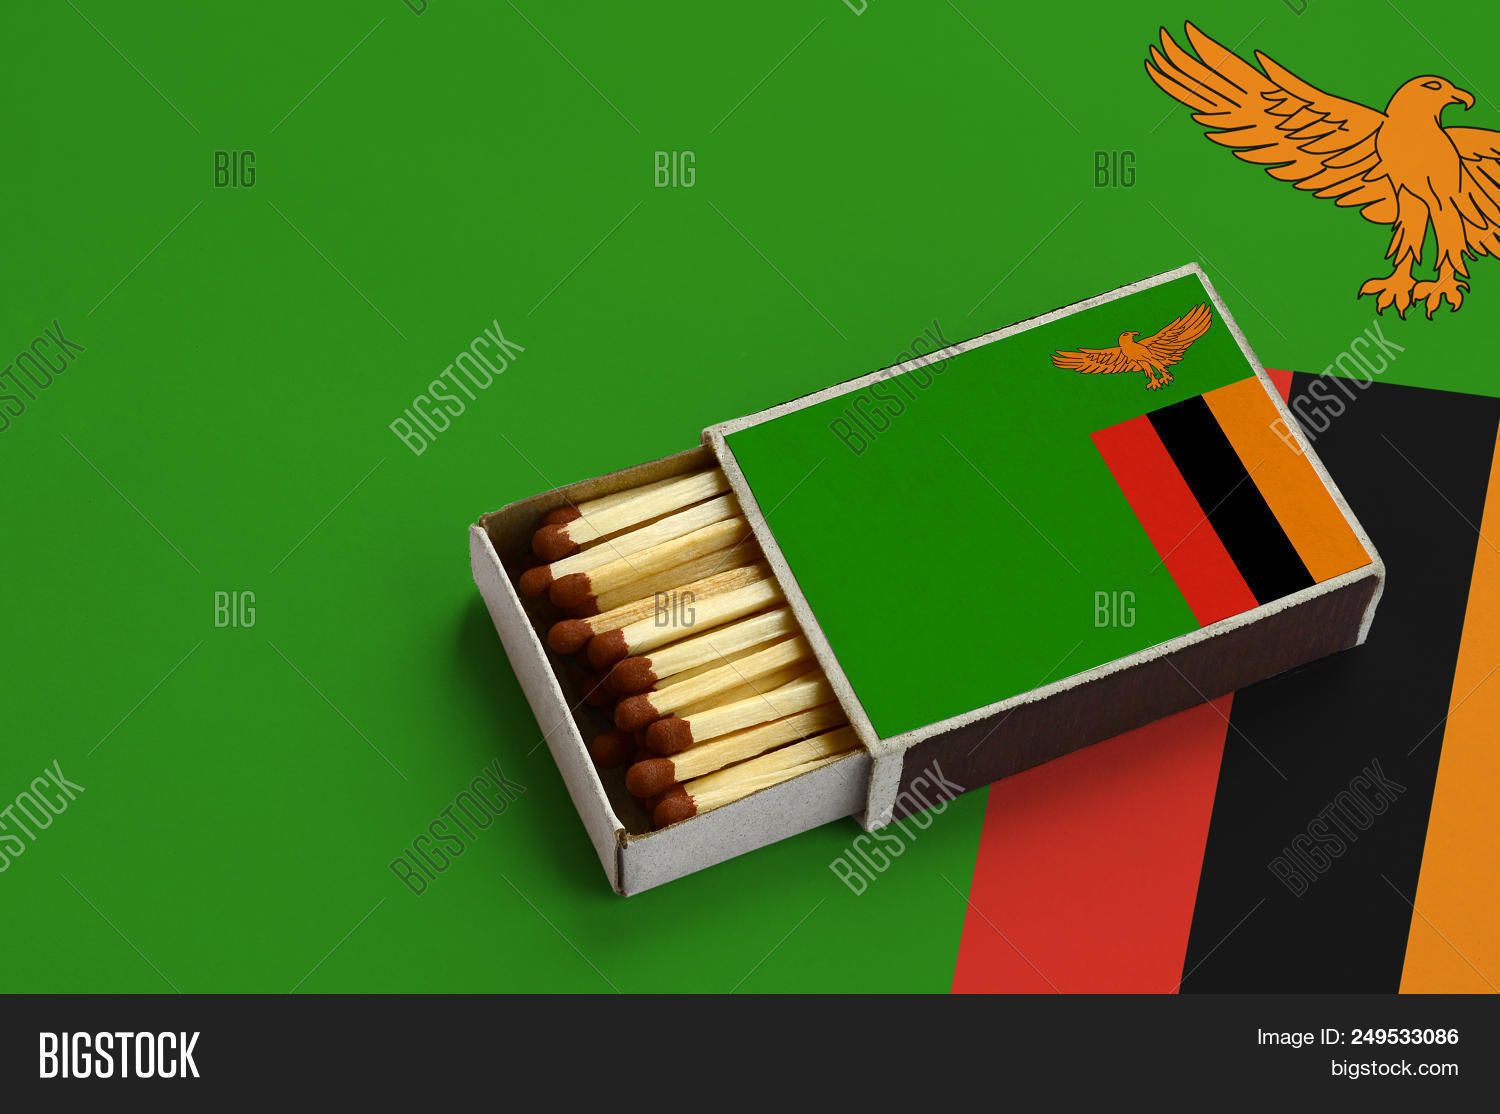 Zambia Flag Shown Open Image & Photo (Free Trial) | Bigstock